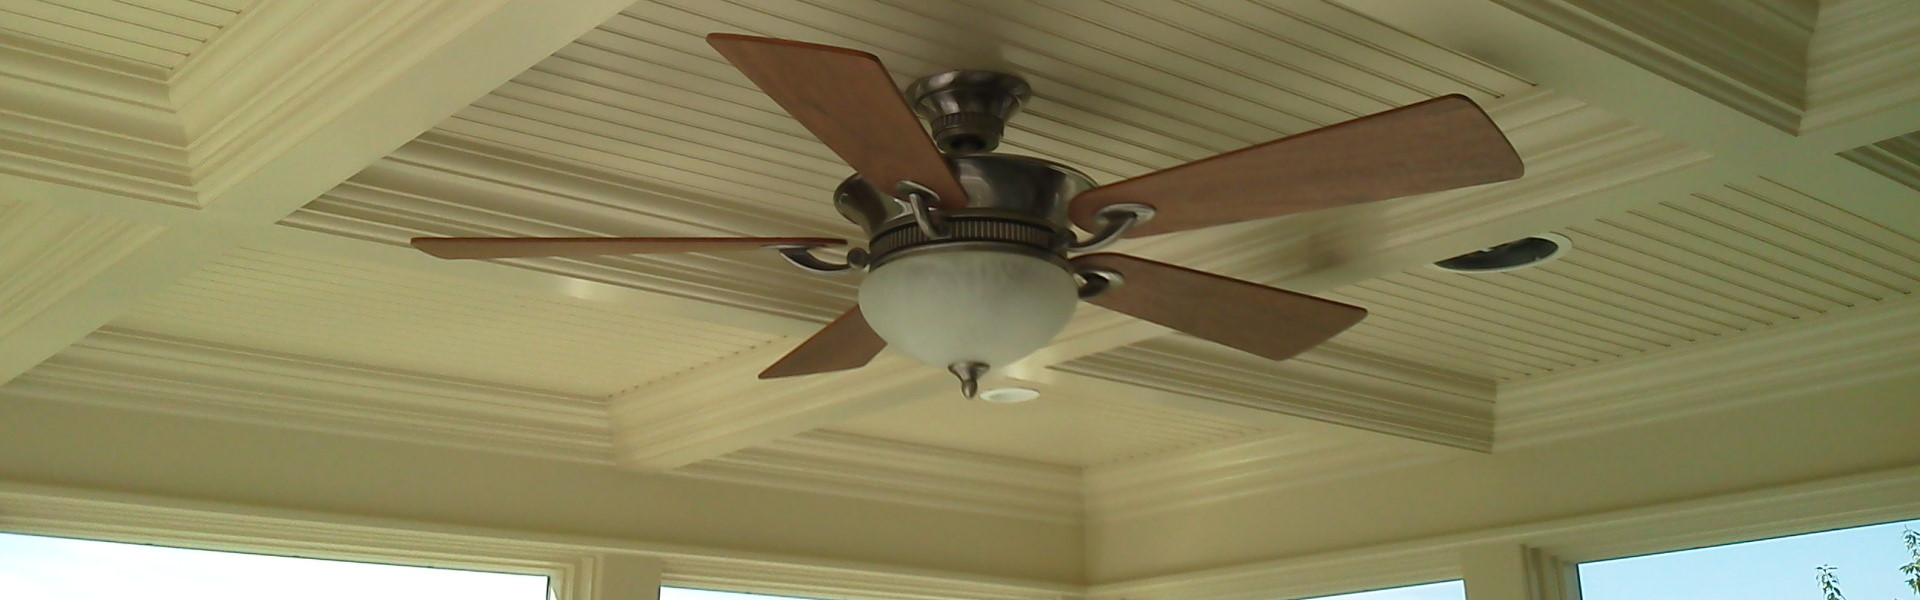 Coffered Ceiling with Fan